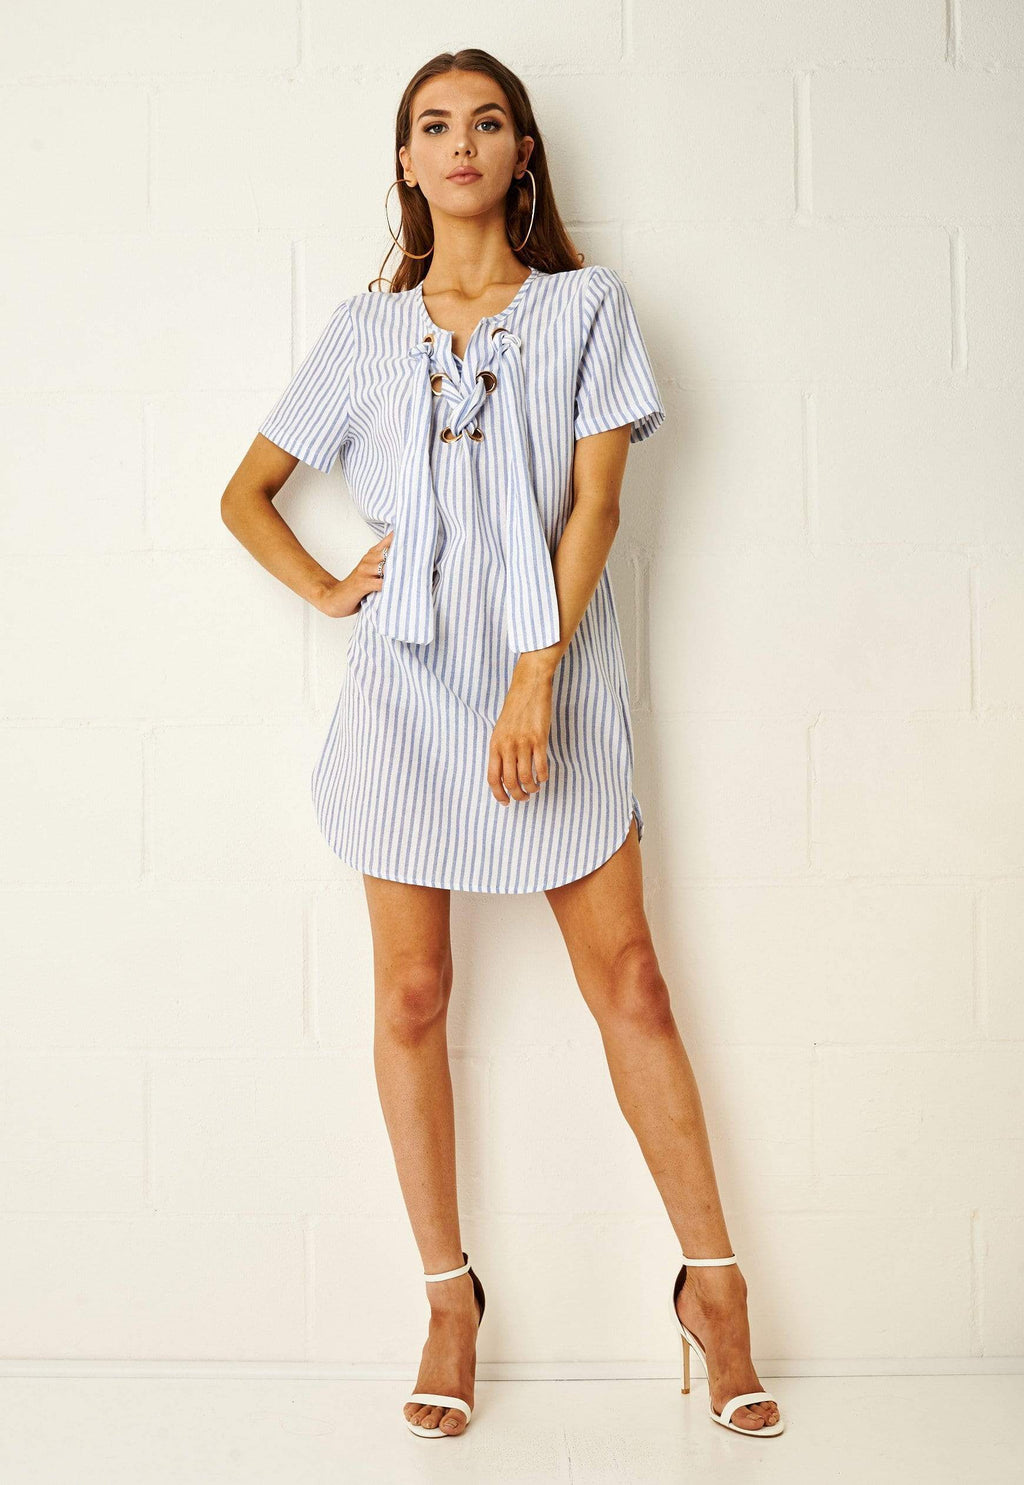 Martinique Blue Stripe Longline Shirt Dress - love frontrow